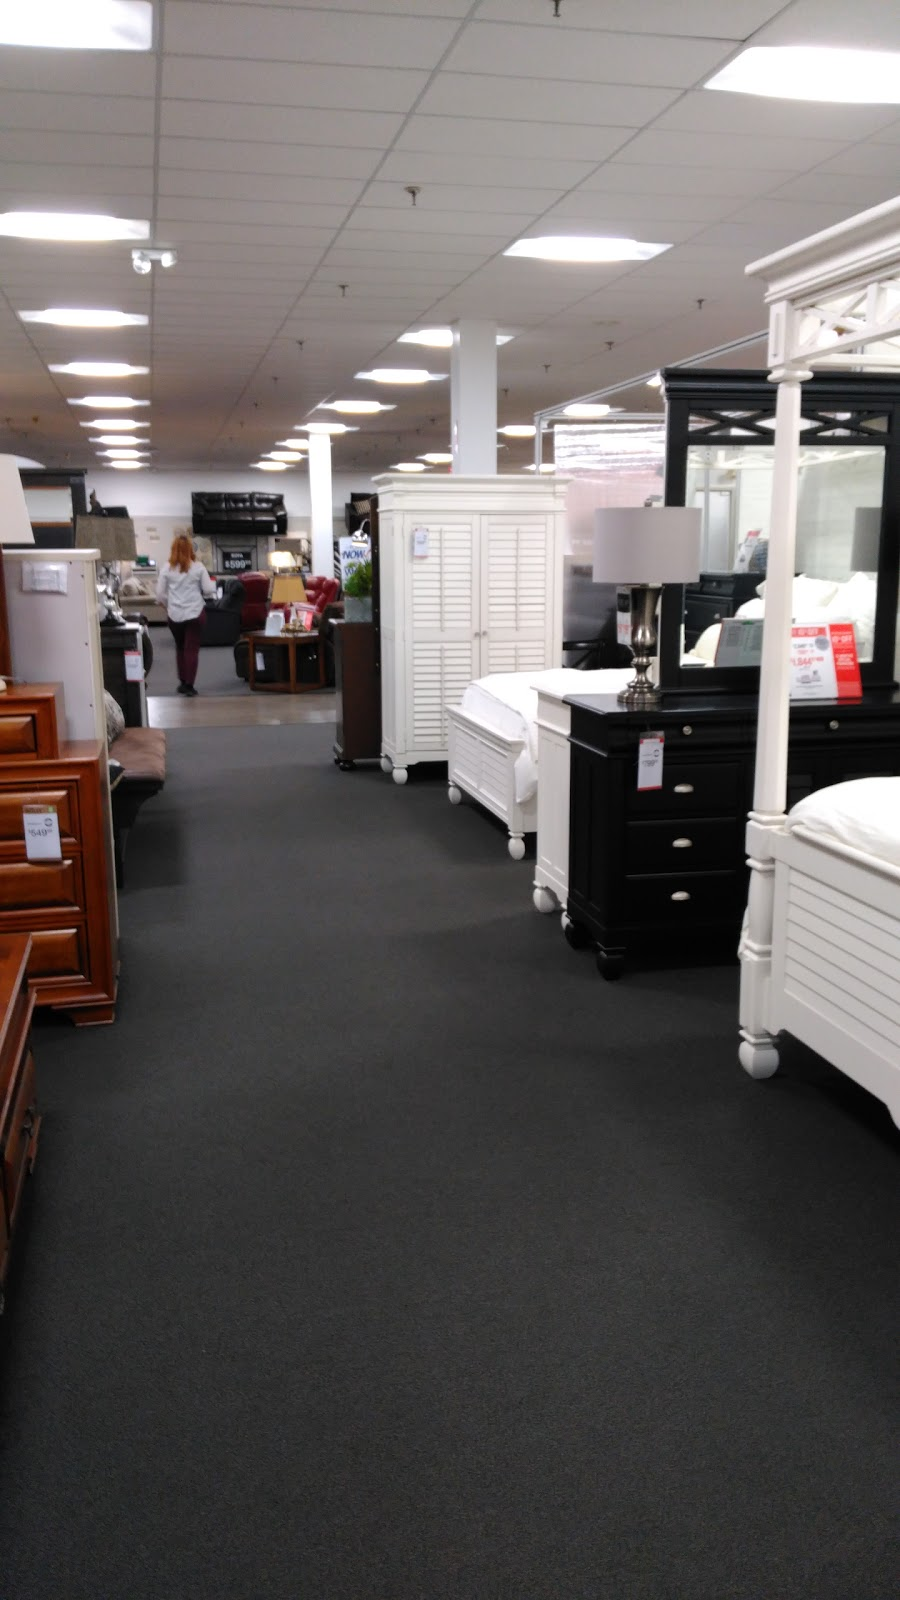 Value City Furniture - furniture store  | Photo 10 of 10 | Address: 8310 S Cicero Ave, Burbank, IL 60459, USA | Phone: (708) 422-2900